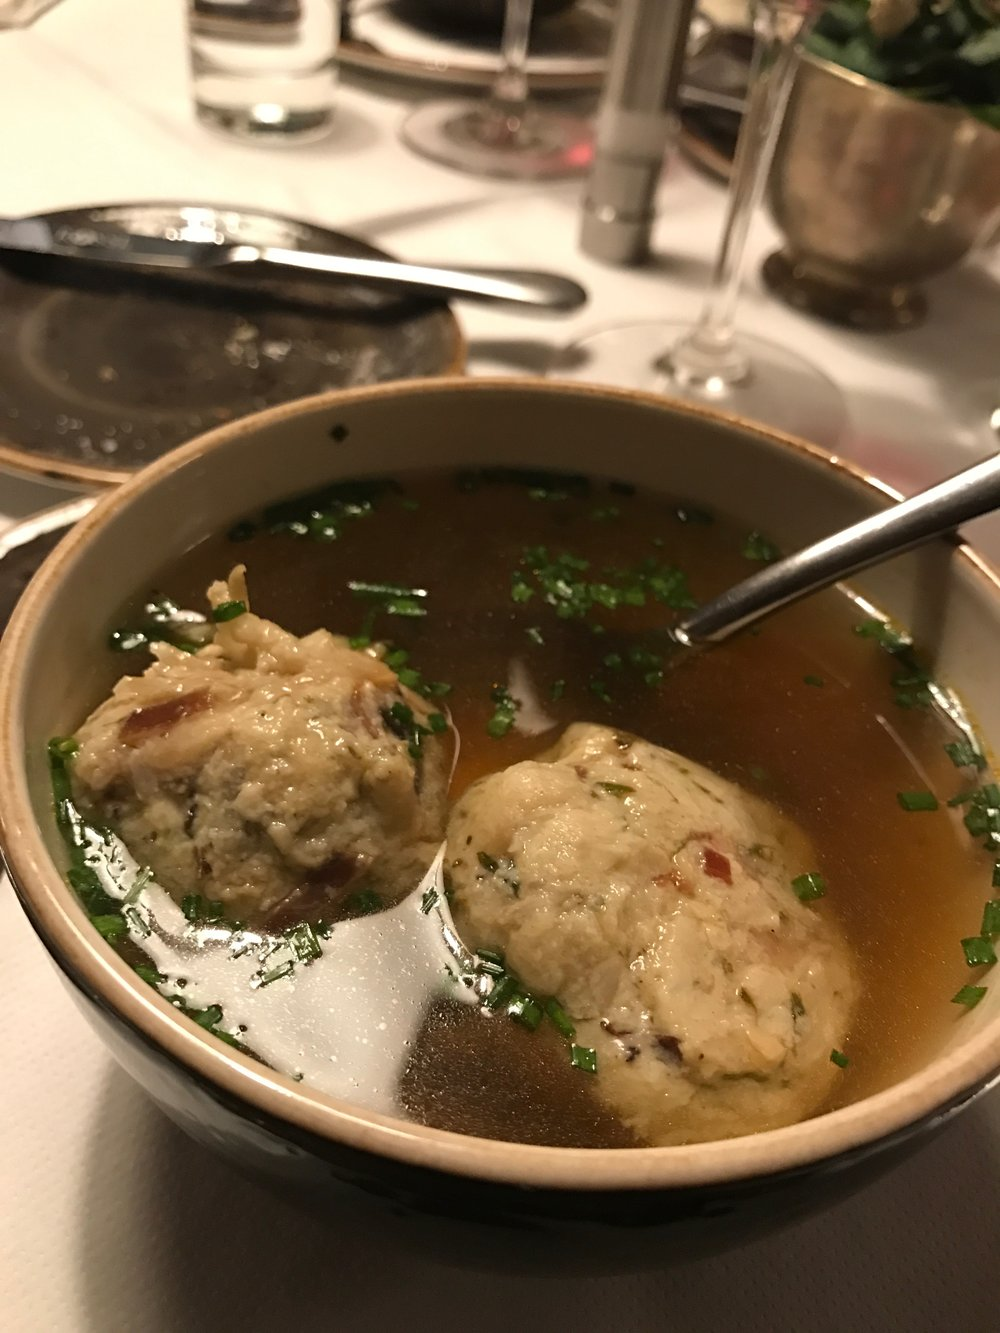 One of my favorite reasons to visit Austria: Speckknödelsuppe (bacon dumpling soup). Amazing plans were hatched over this soup and some stone pine schnapps.